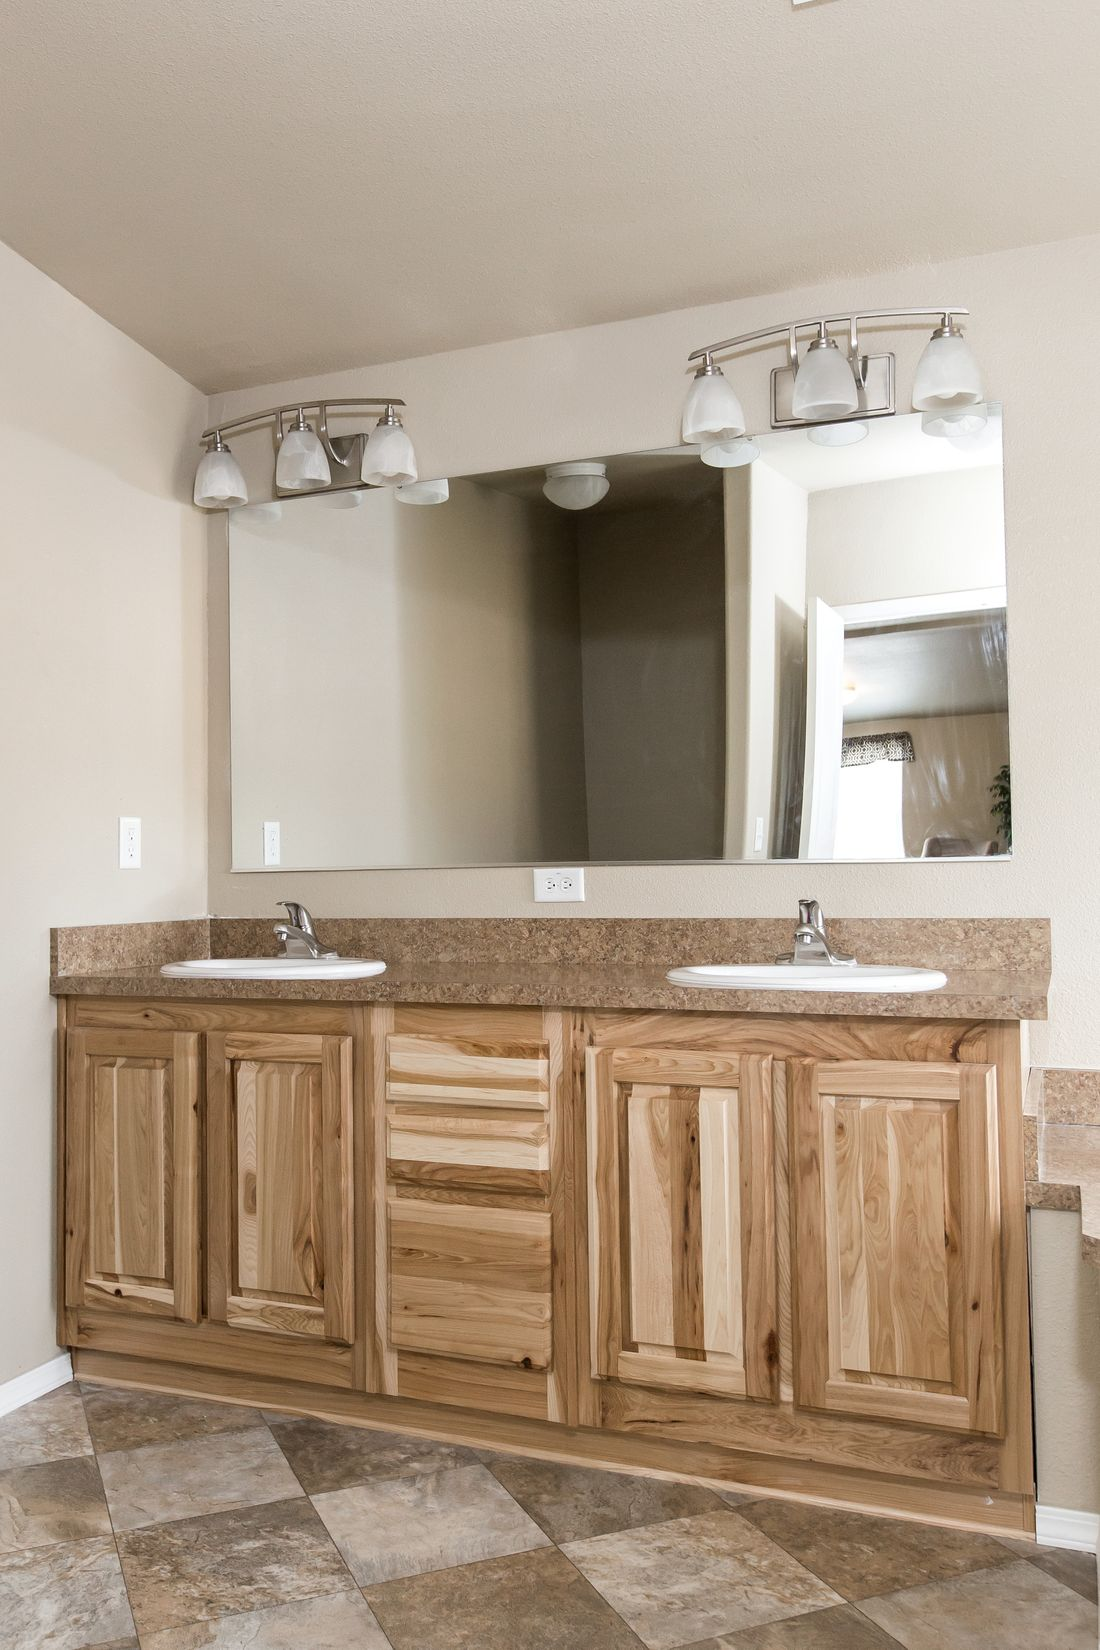 The 2027 COLUMIA RIVER Master Bathroom. This Manufactured Mobile Home features 4 bedrooms and 2 baths.